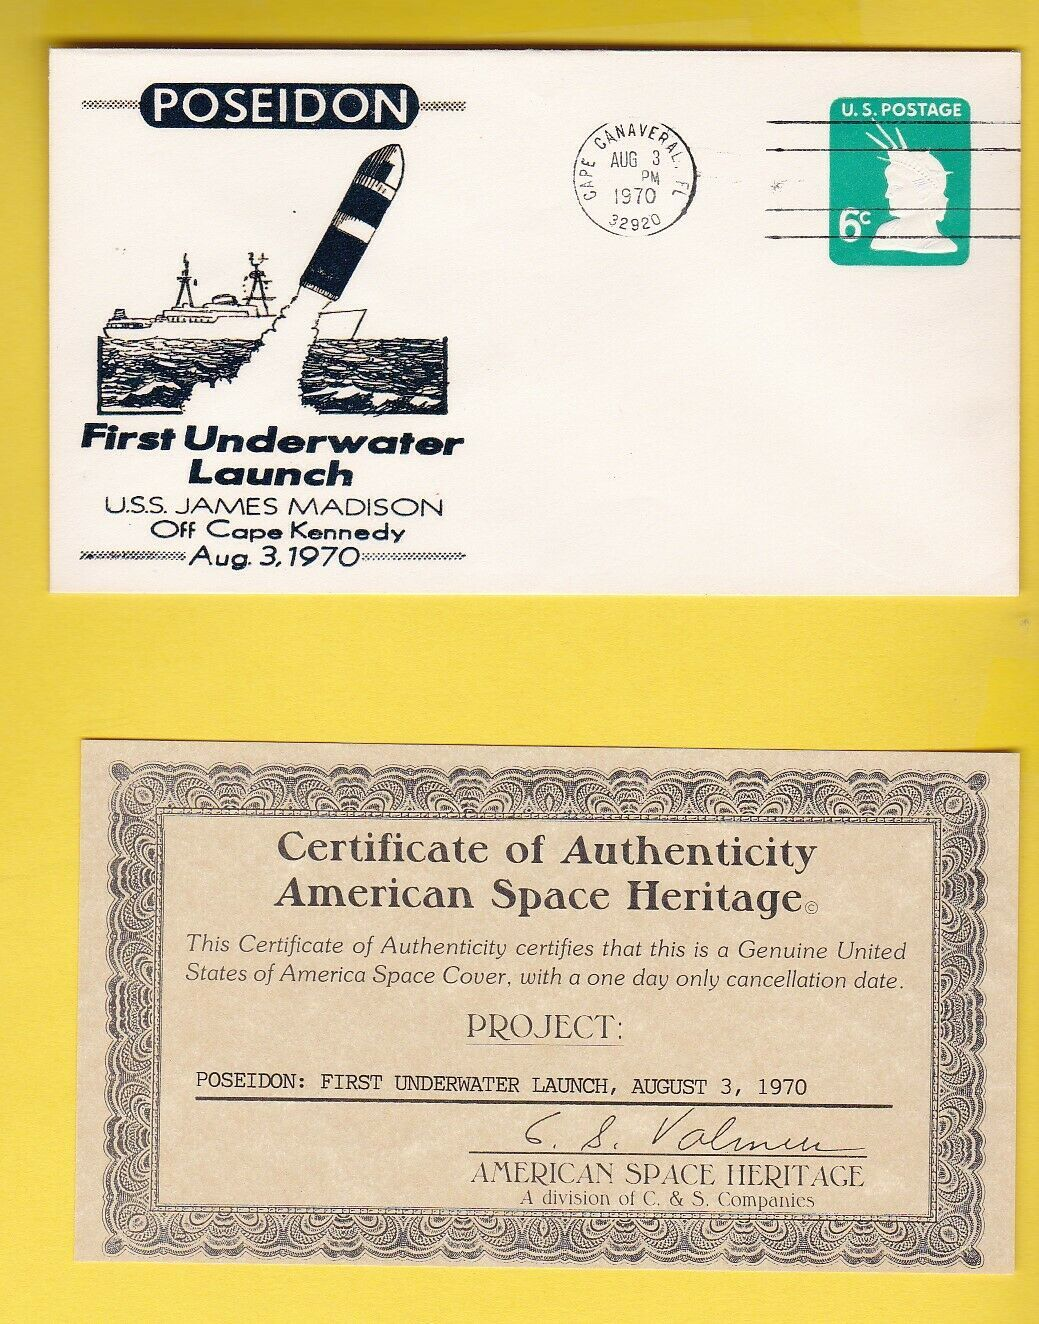 Primary image for POSEIDON 1st UNDERWATER LAUNCH CAPE CANAVERAL AMERICAN SPACE HERITAGE WITH COA